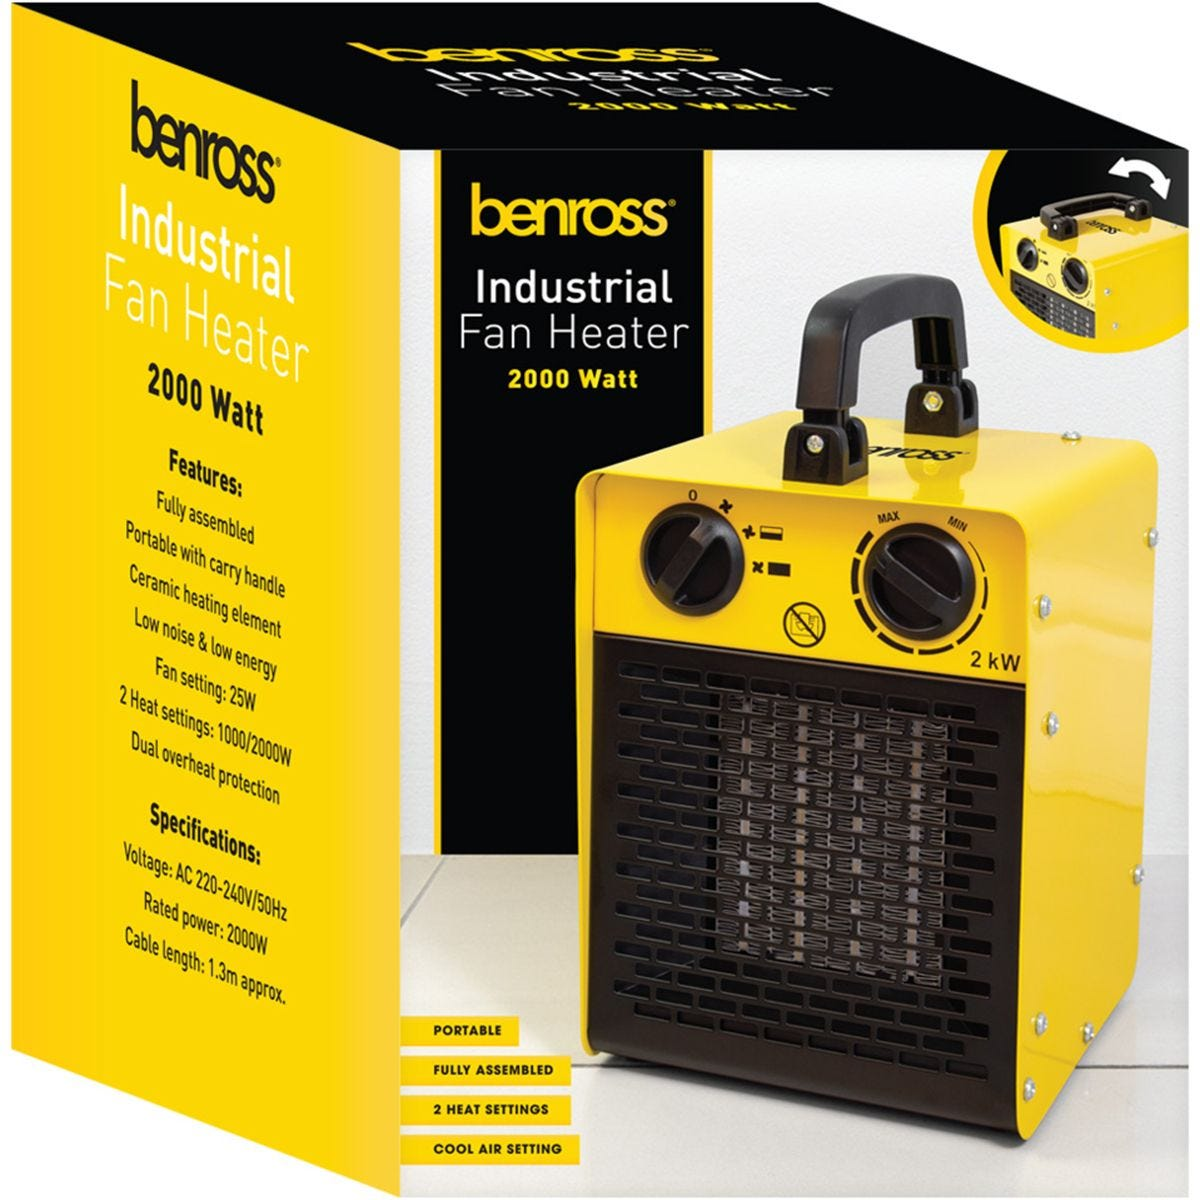 Benross 2kw Industrial Fan Heater